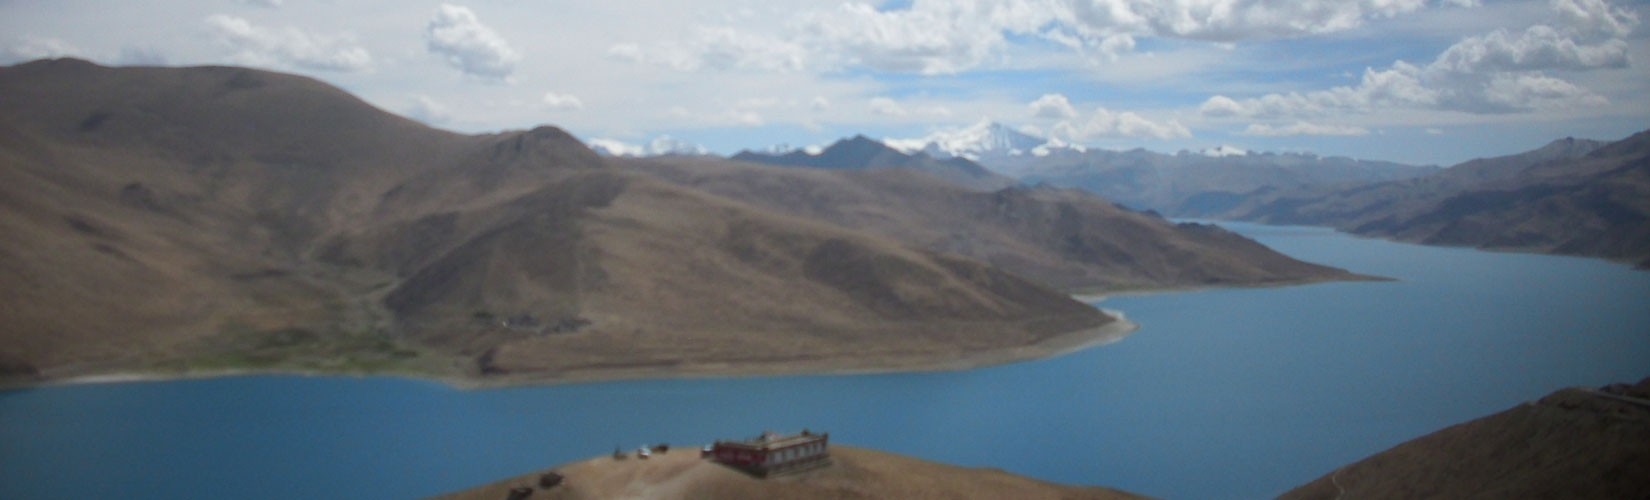 Kailash Tour with Lhasa by Flight